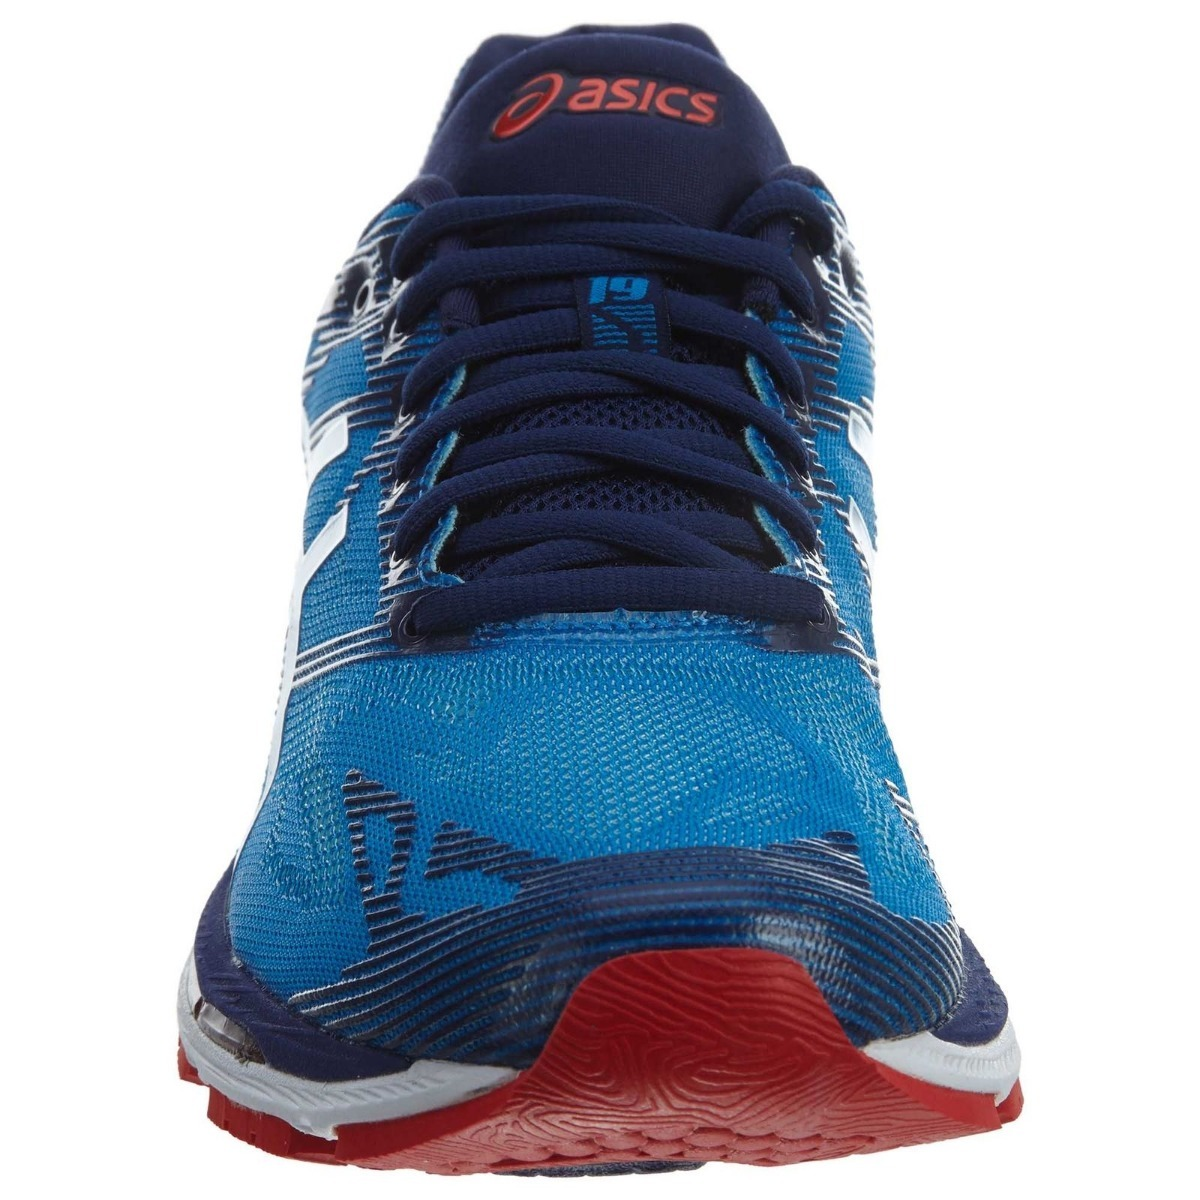 buy popular 6b777 4bbed Zapatillas Gel Nimbus 19 Asics T700n/4301 - Azul